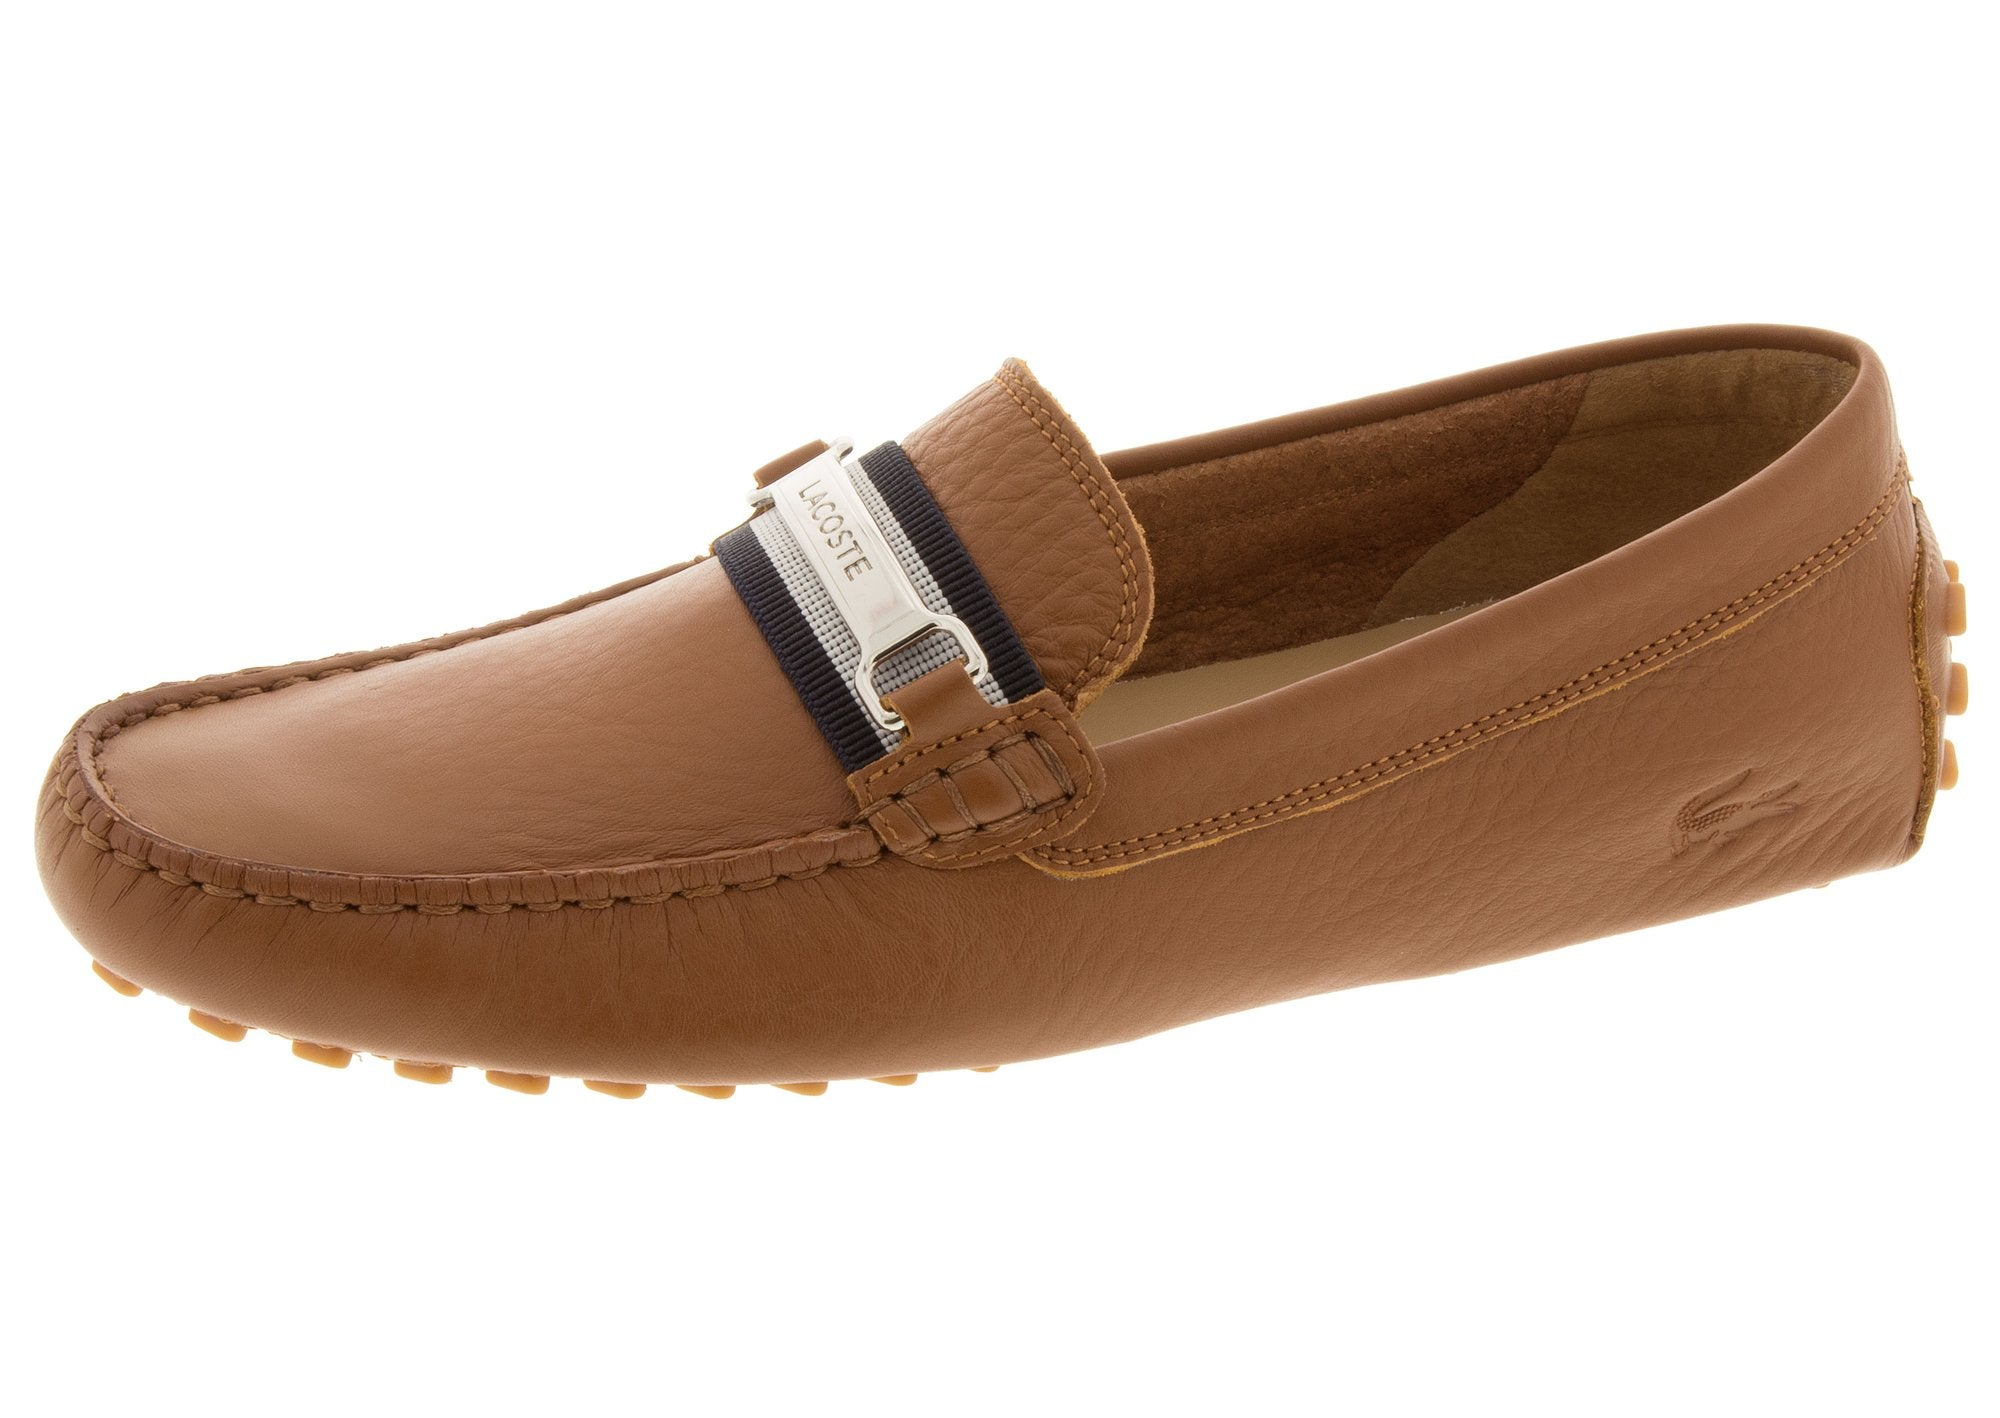 Men's Ansted 119 Loafer Sneaker TAN/NAVY